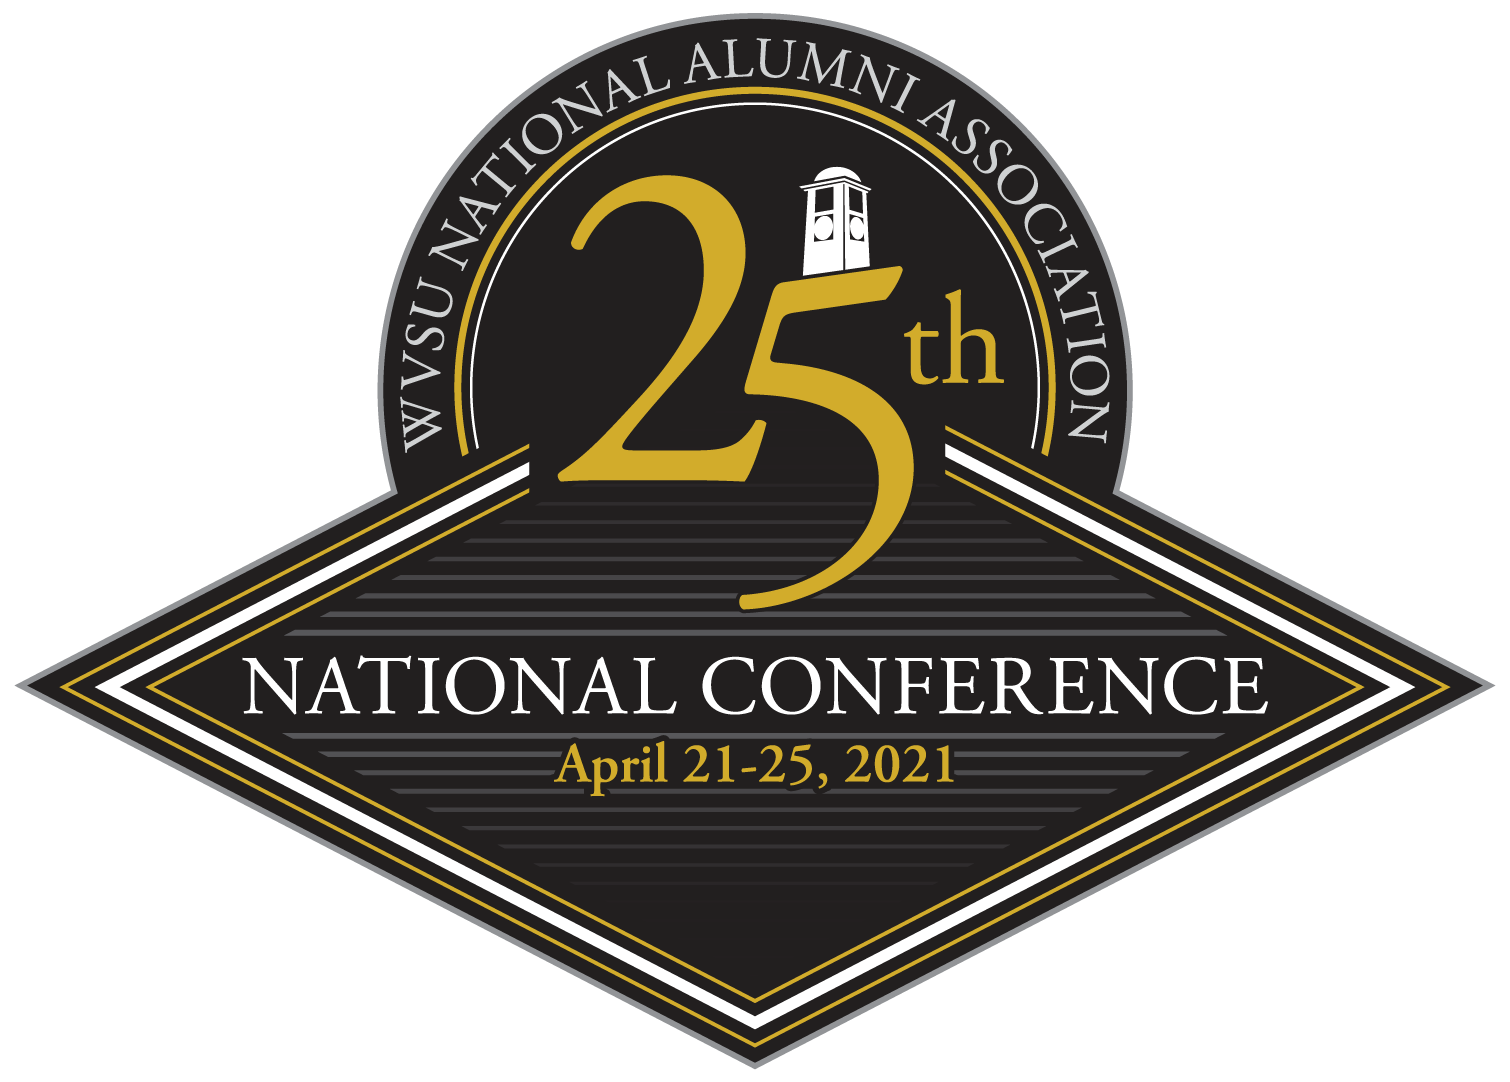 NAA conference 2021